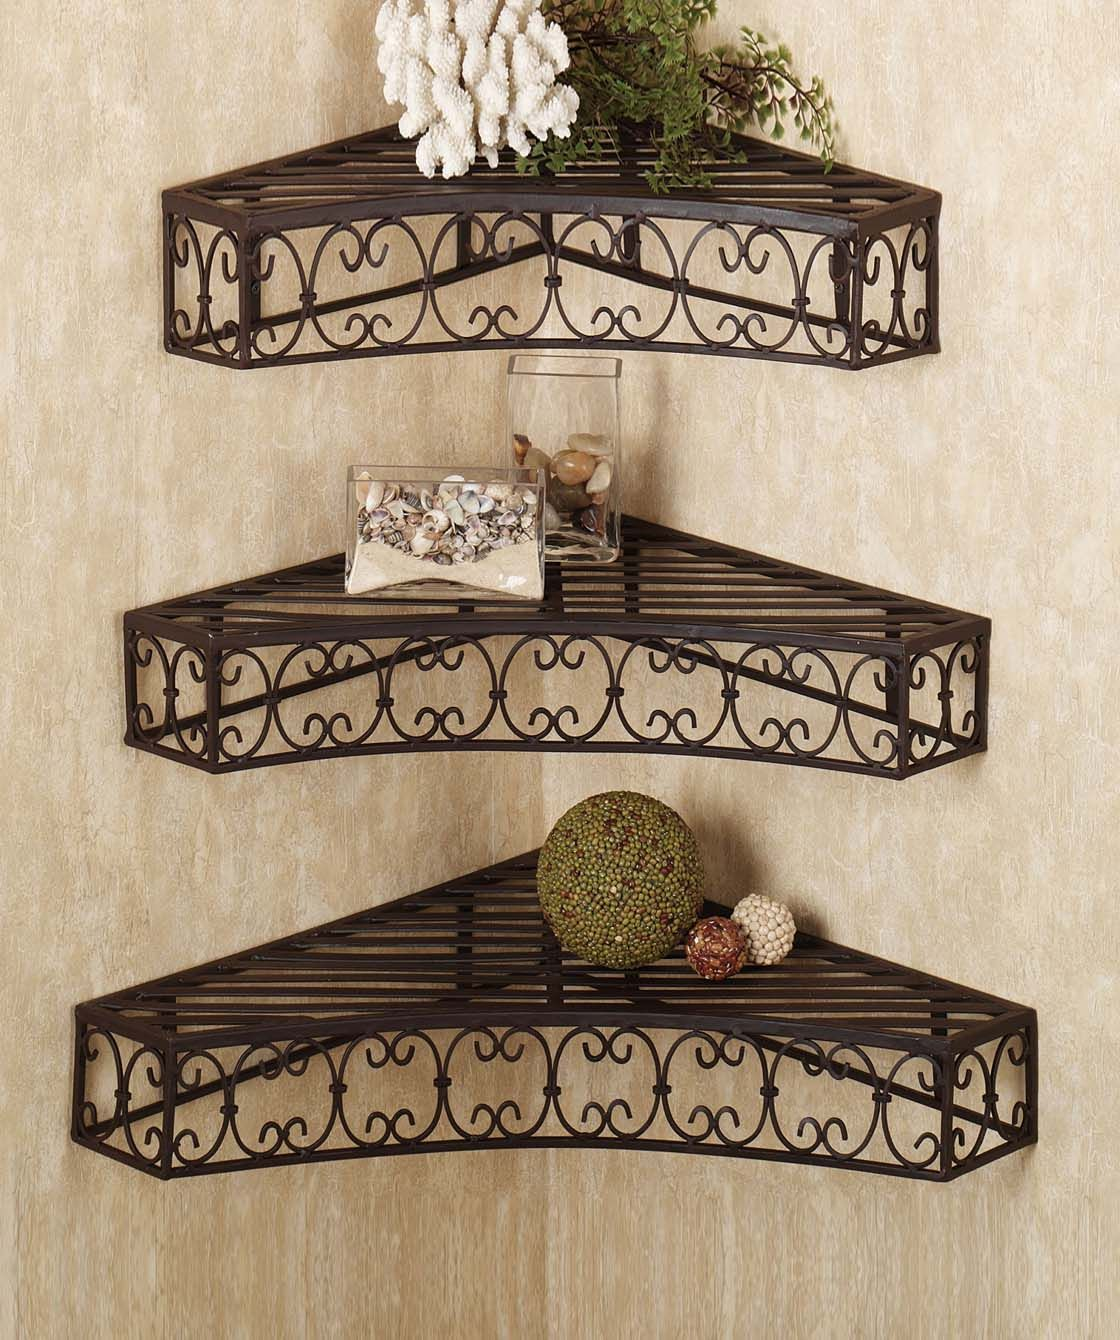 fashionandyou.com brings to you a unique collection of shelves. Each piece reflects the artistic qualities and time one has taken to shape these appreciative decors. It's time you enlighten your dwelling with these creative pieces, it's time you indulge yourself with fashionandyou.com!CATEGORY: Wall Shelves (3 Pcs)COLOUR: BlackMATERIAL: IronDIMENSION: L x W x H- 19.5 x 13.5 x 2.5 inches L x W x H- 16 x 11.5 x 2.5 inches L x W x H- 12.5 x 8.5 x 2.5 inches PRODUCT CODE: mbdr21DELIVERY: We know…